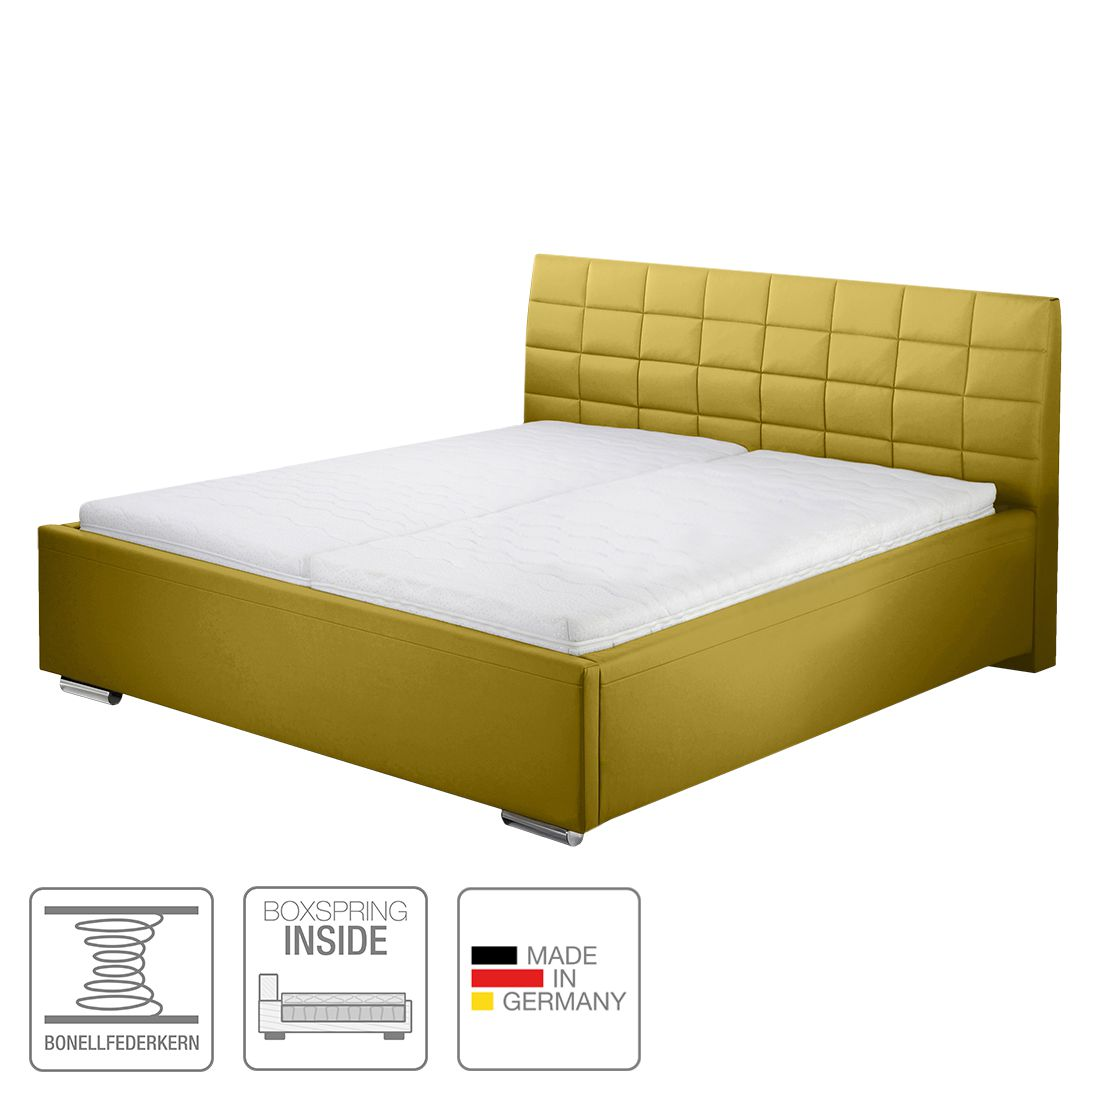 boxspring inside bett victoria kunstleder 140 x 200cm h4 ab 100 kg. Black Bedroom Furniture Sets. Home Design Ideas